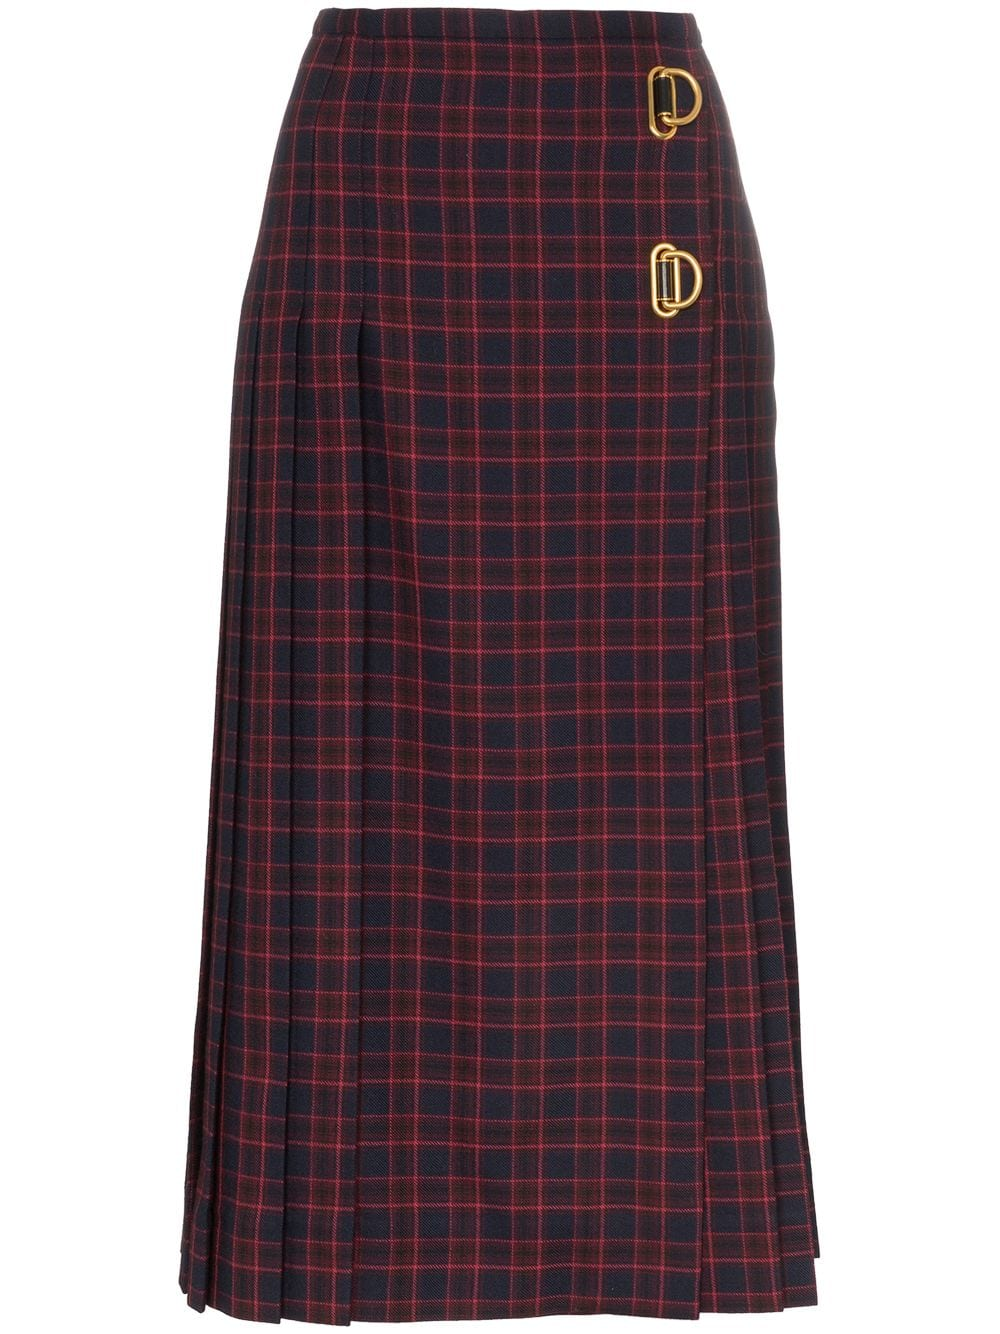 Burberry midi skirt from www.farfetch.com